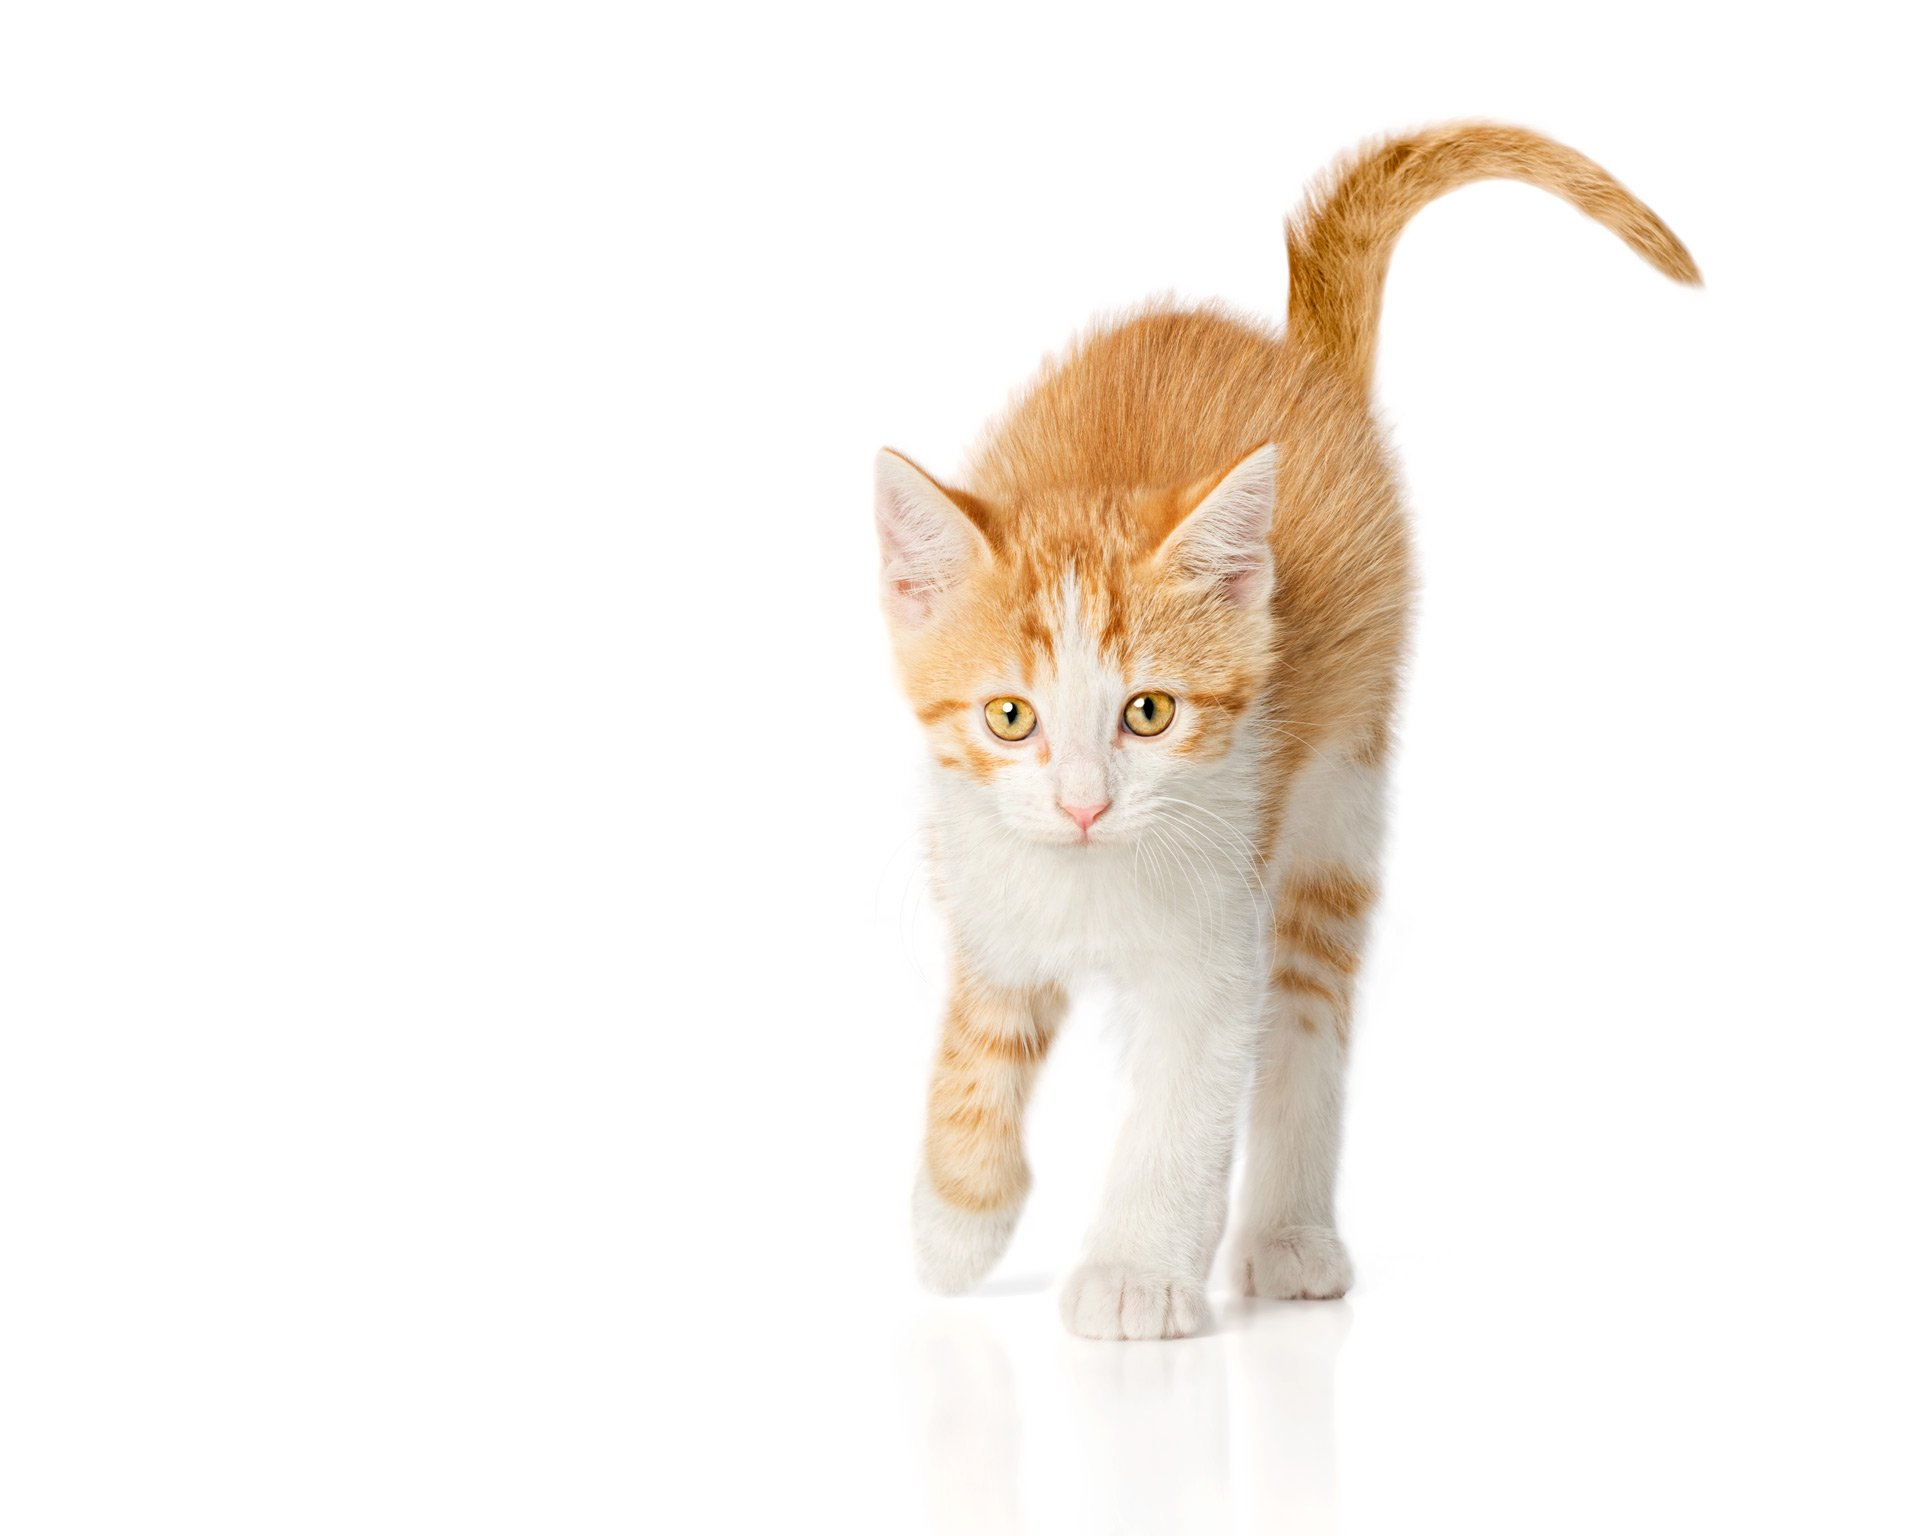 cat-white-and-orange-shorthair-kitten